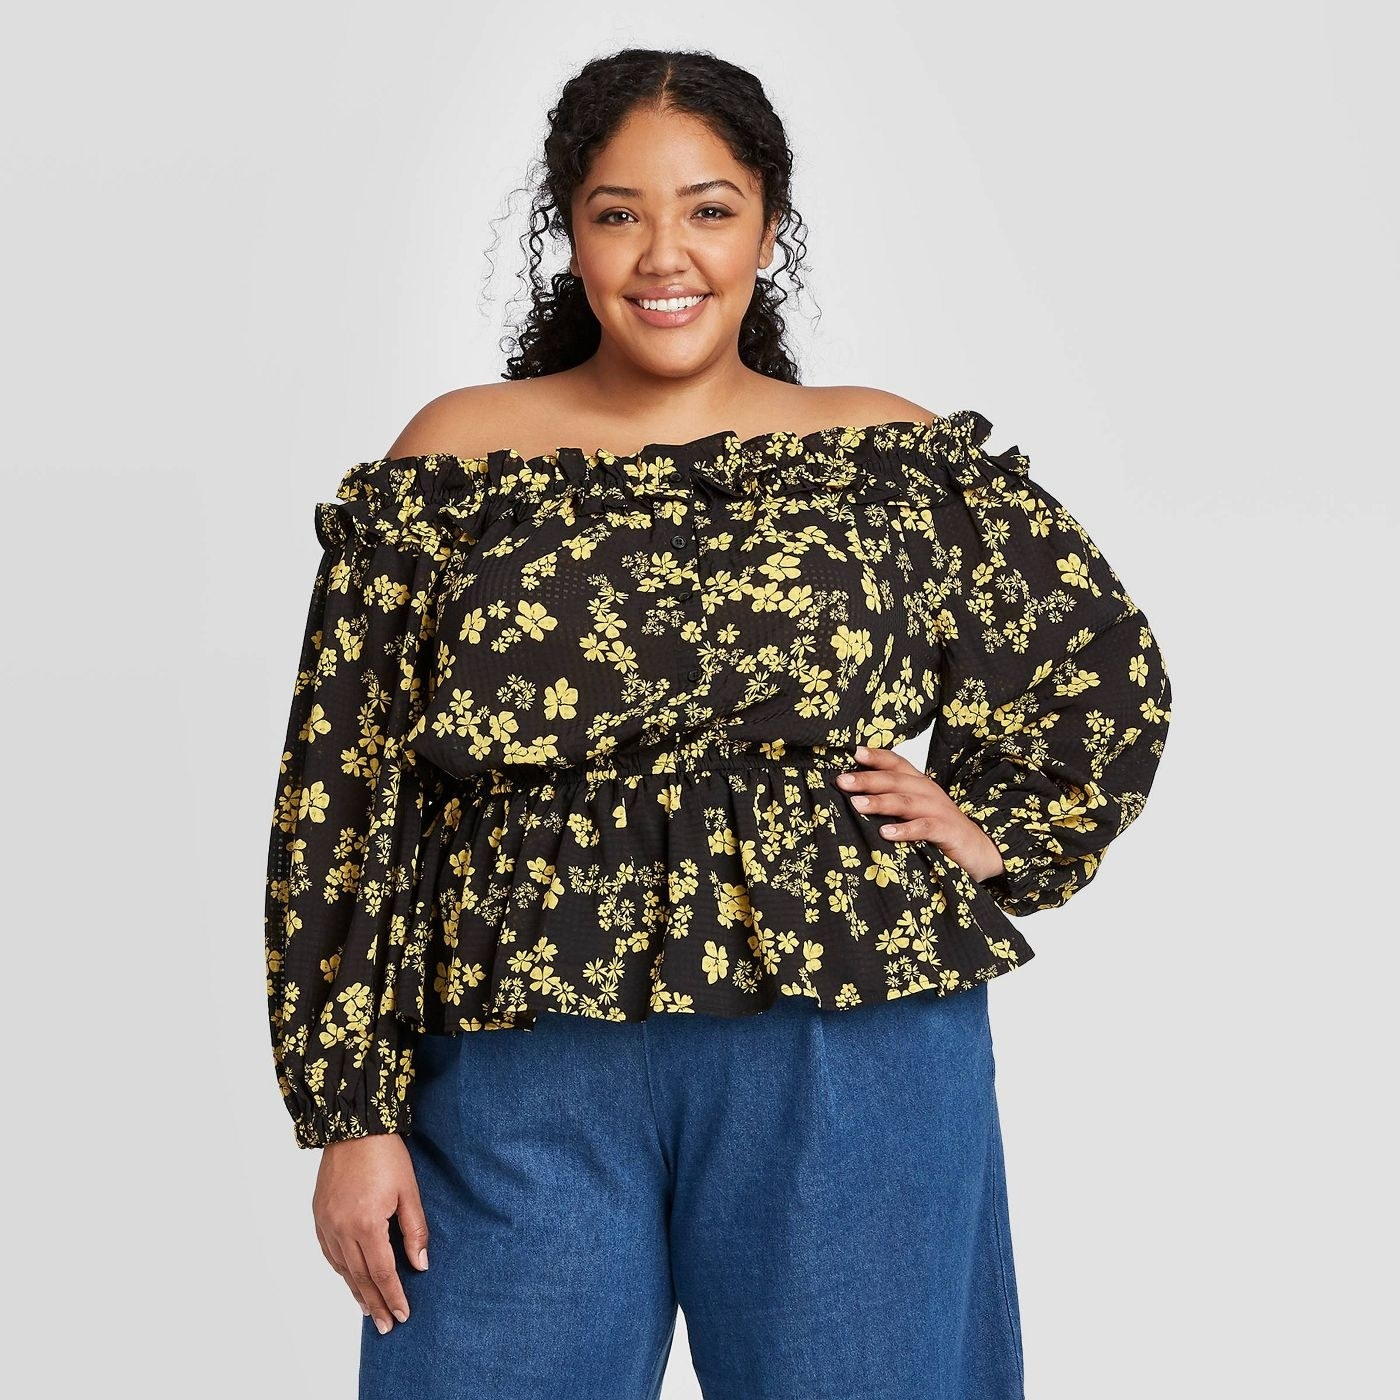 A long sleeved top with ruffled detailing at the neckline hem